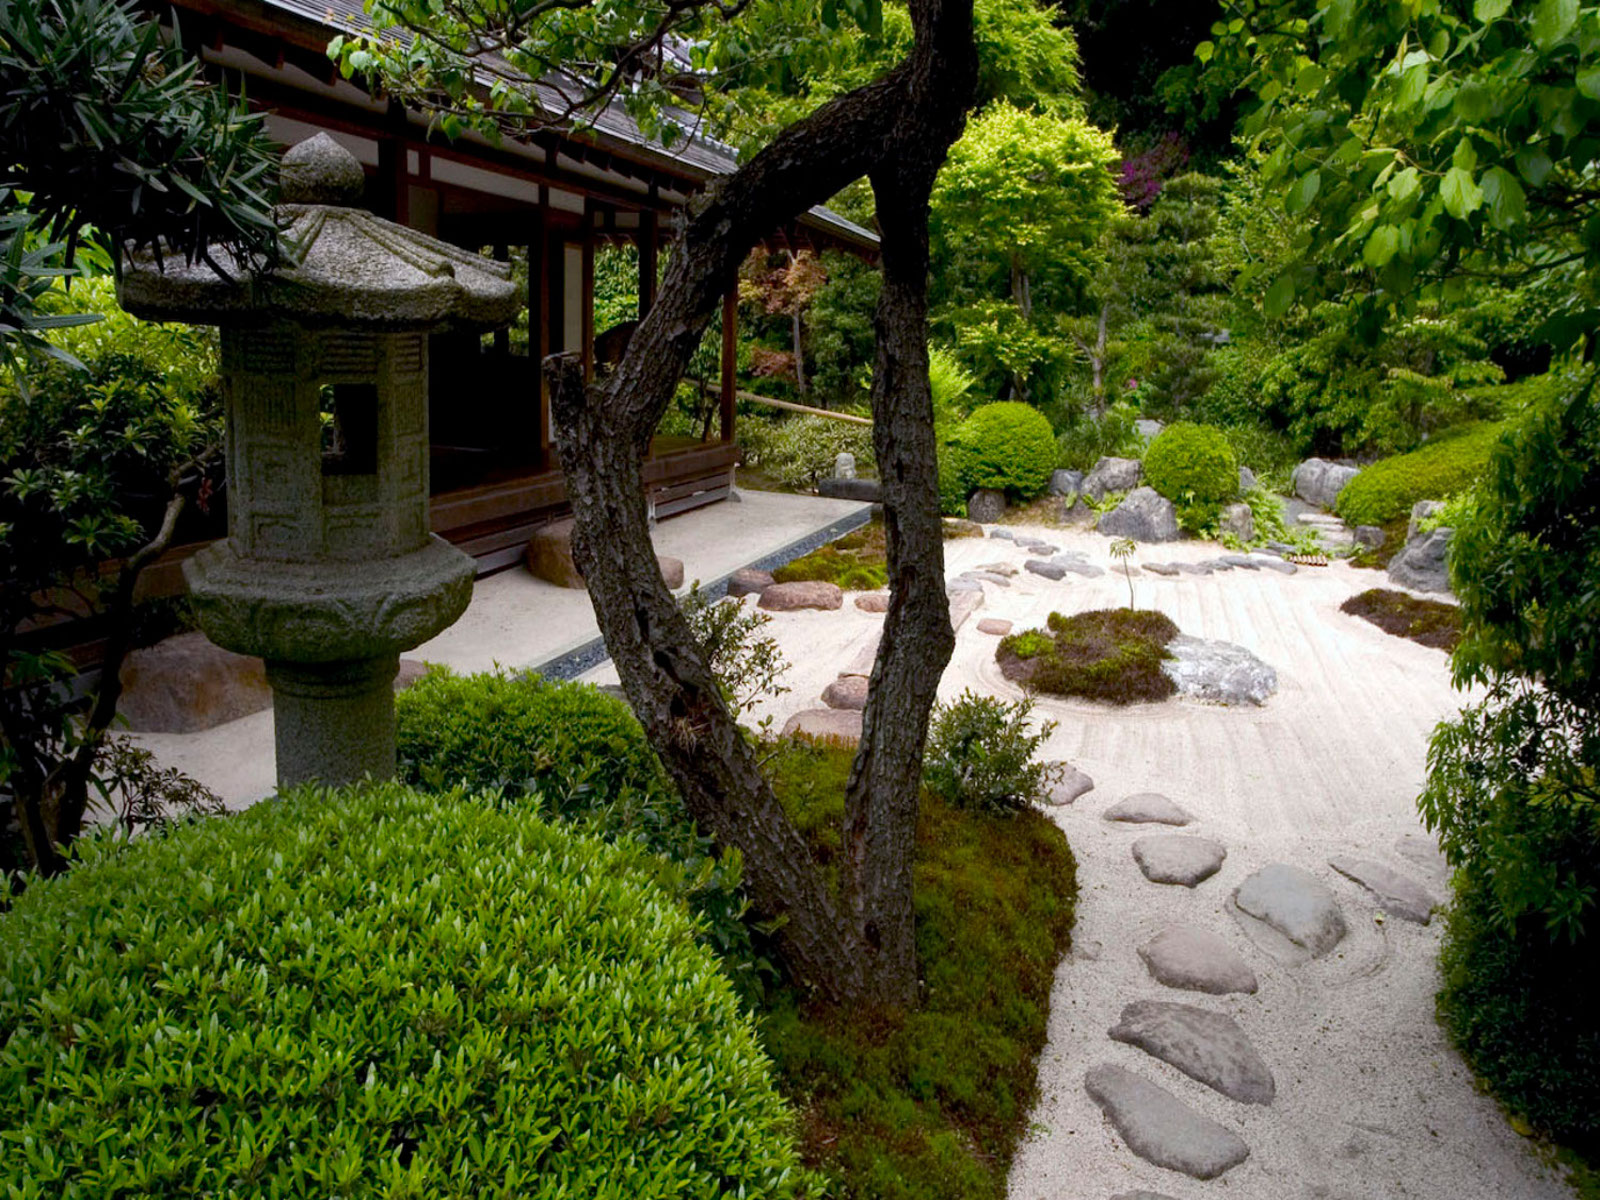 Zen garden wallpaper hd wallpaper pictures gallery for Zen garden designs plan